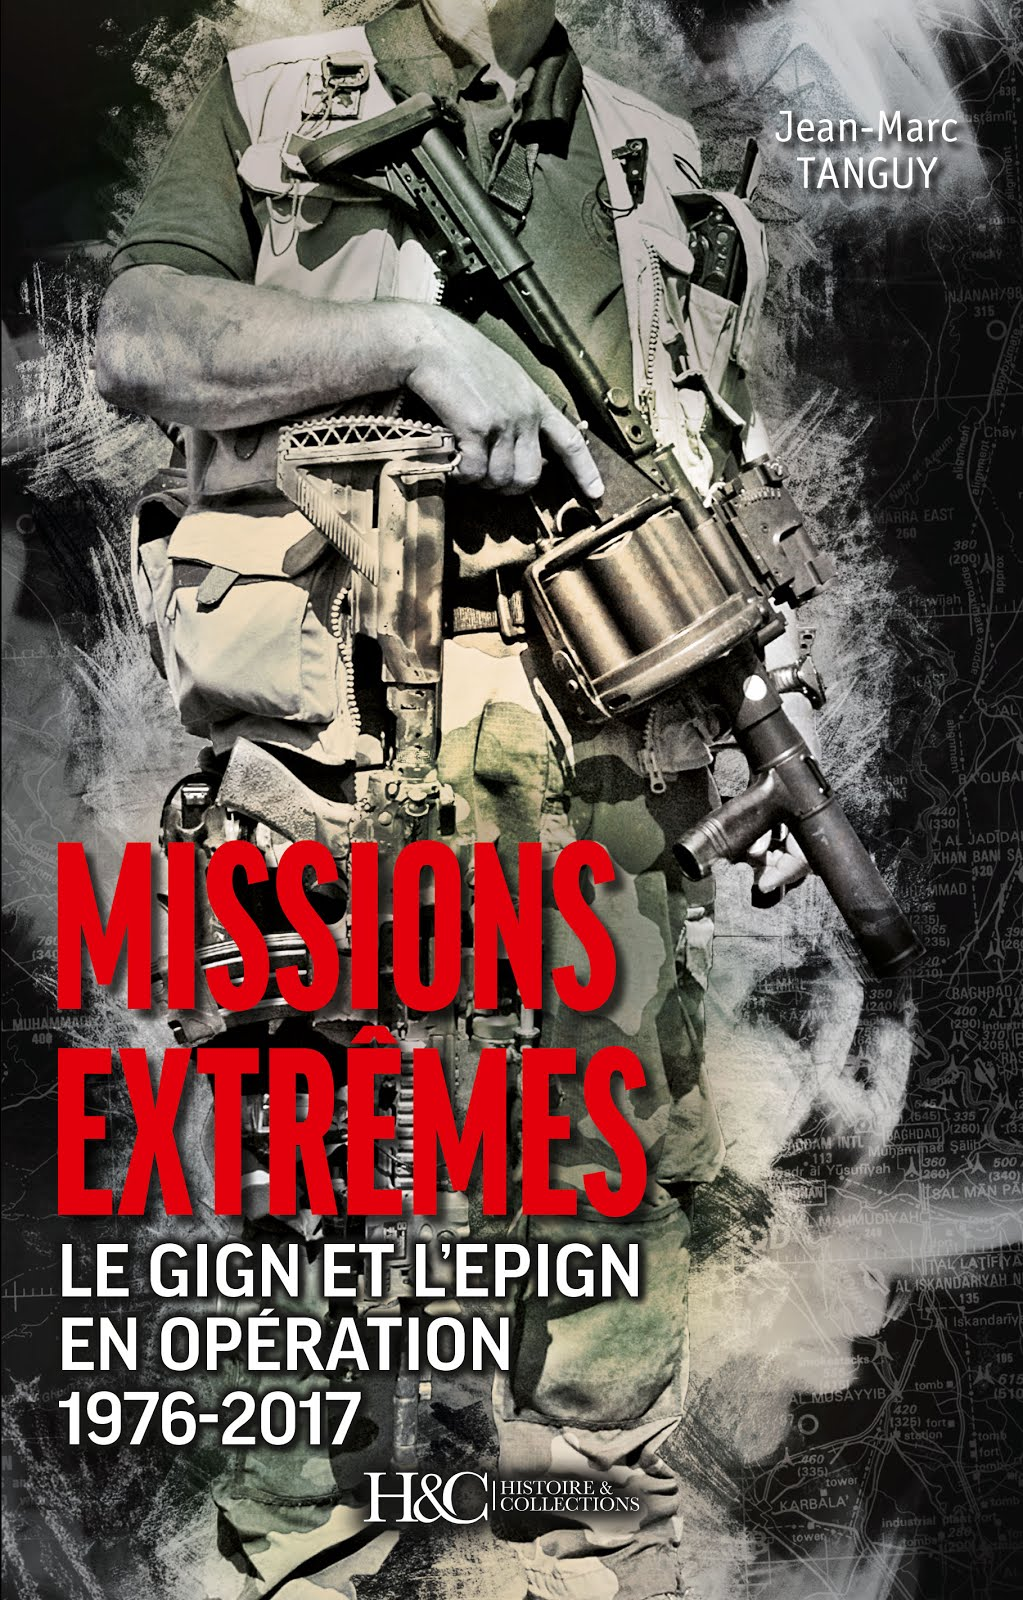 Mission extrêmes, GIGN et EPIGN en opérations 1976-2017